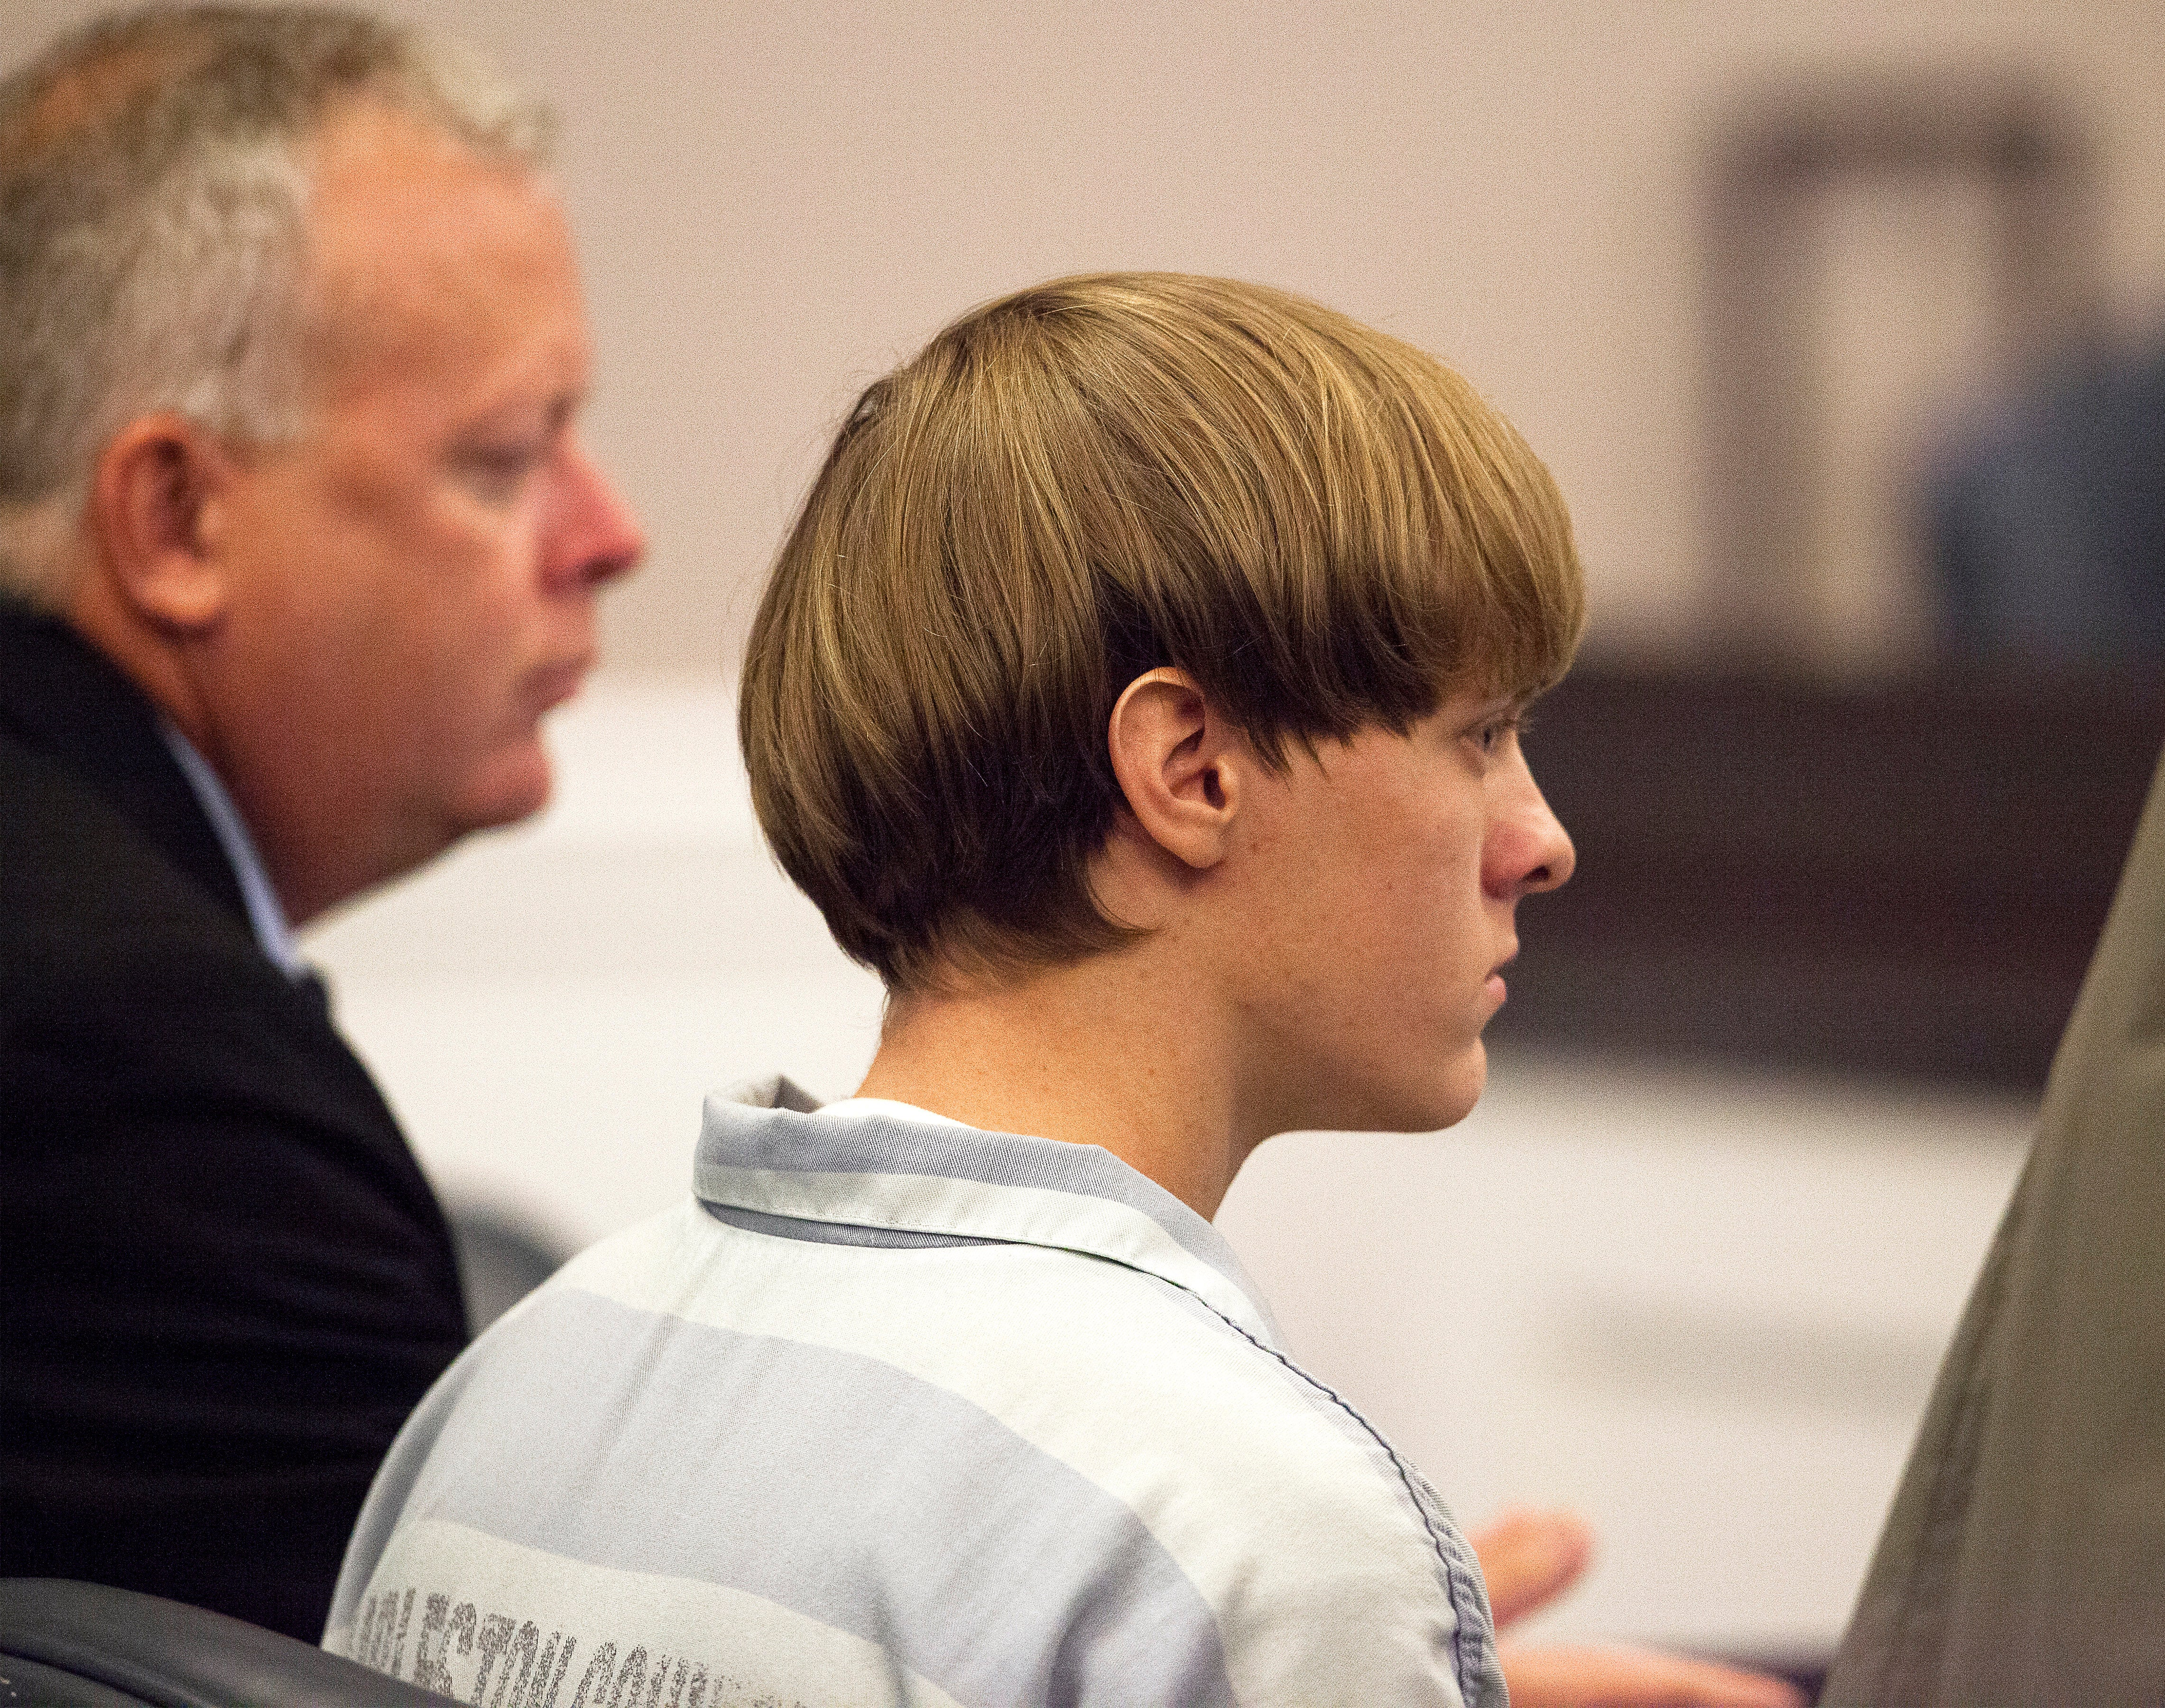 Charleston Church Shooter Dylann Roof Found Guilty On All Charges